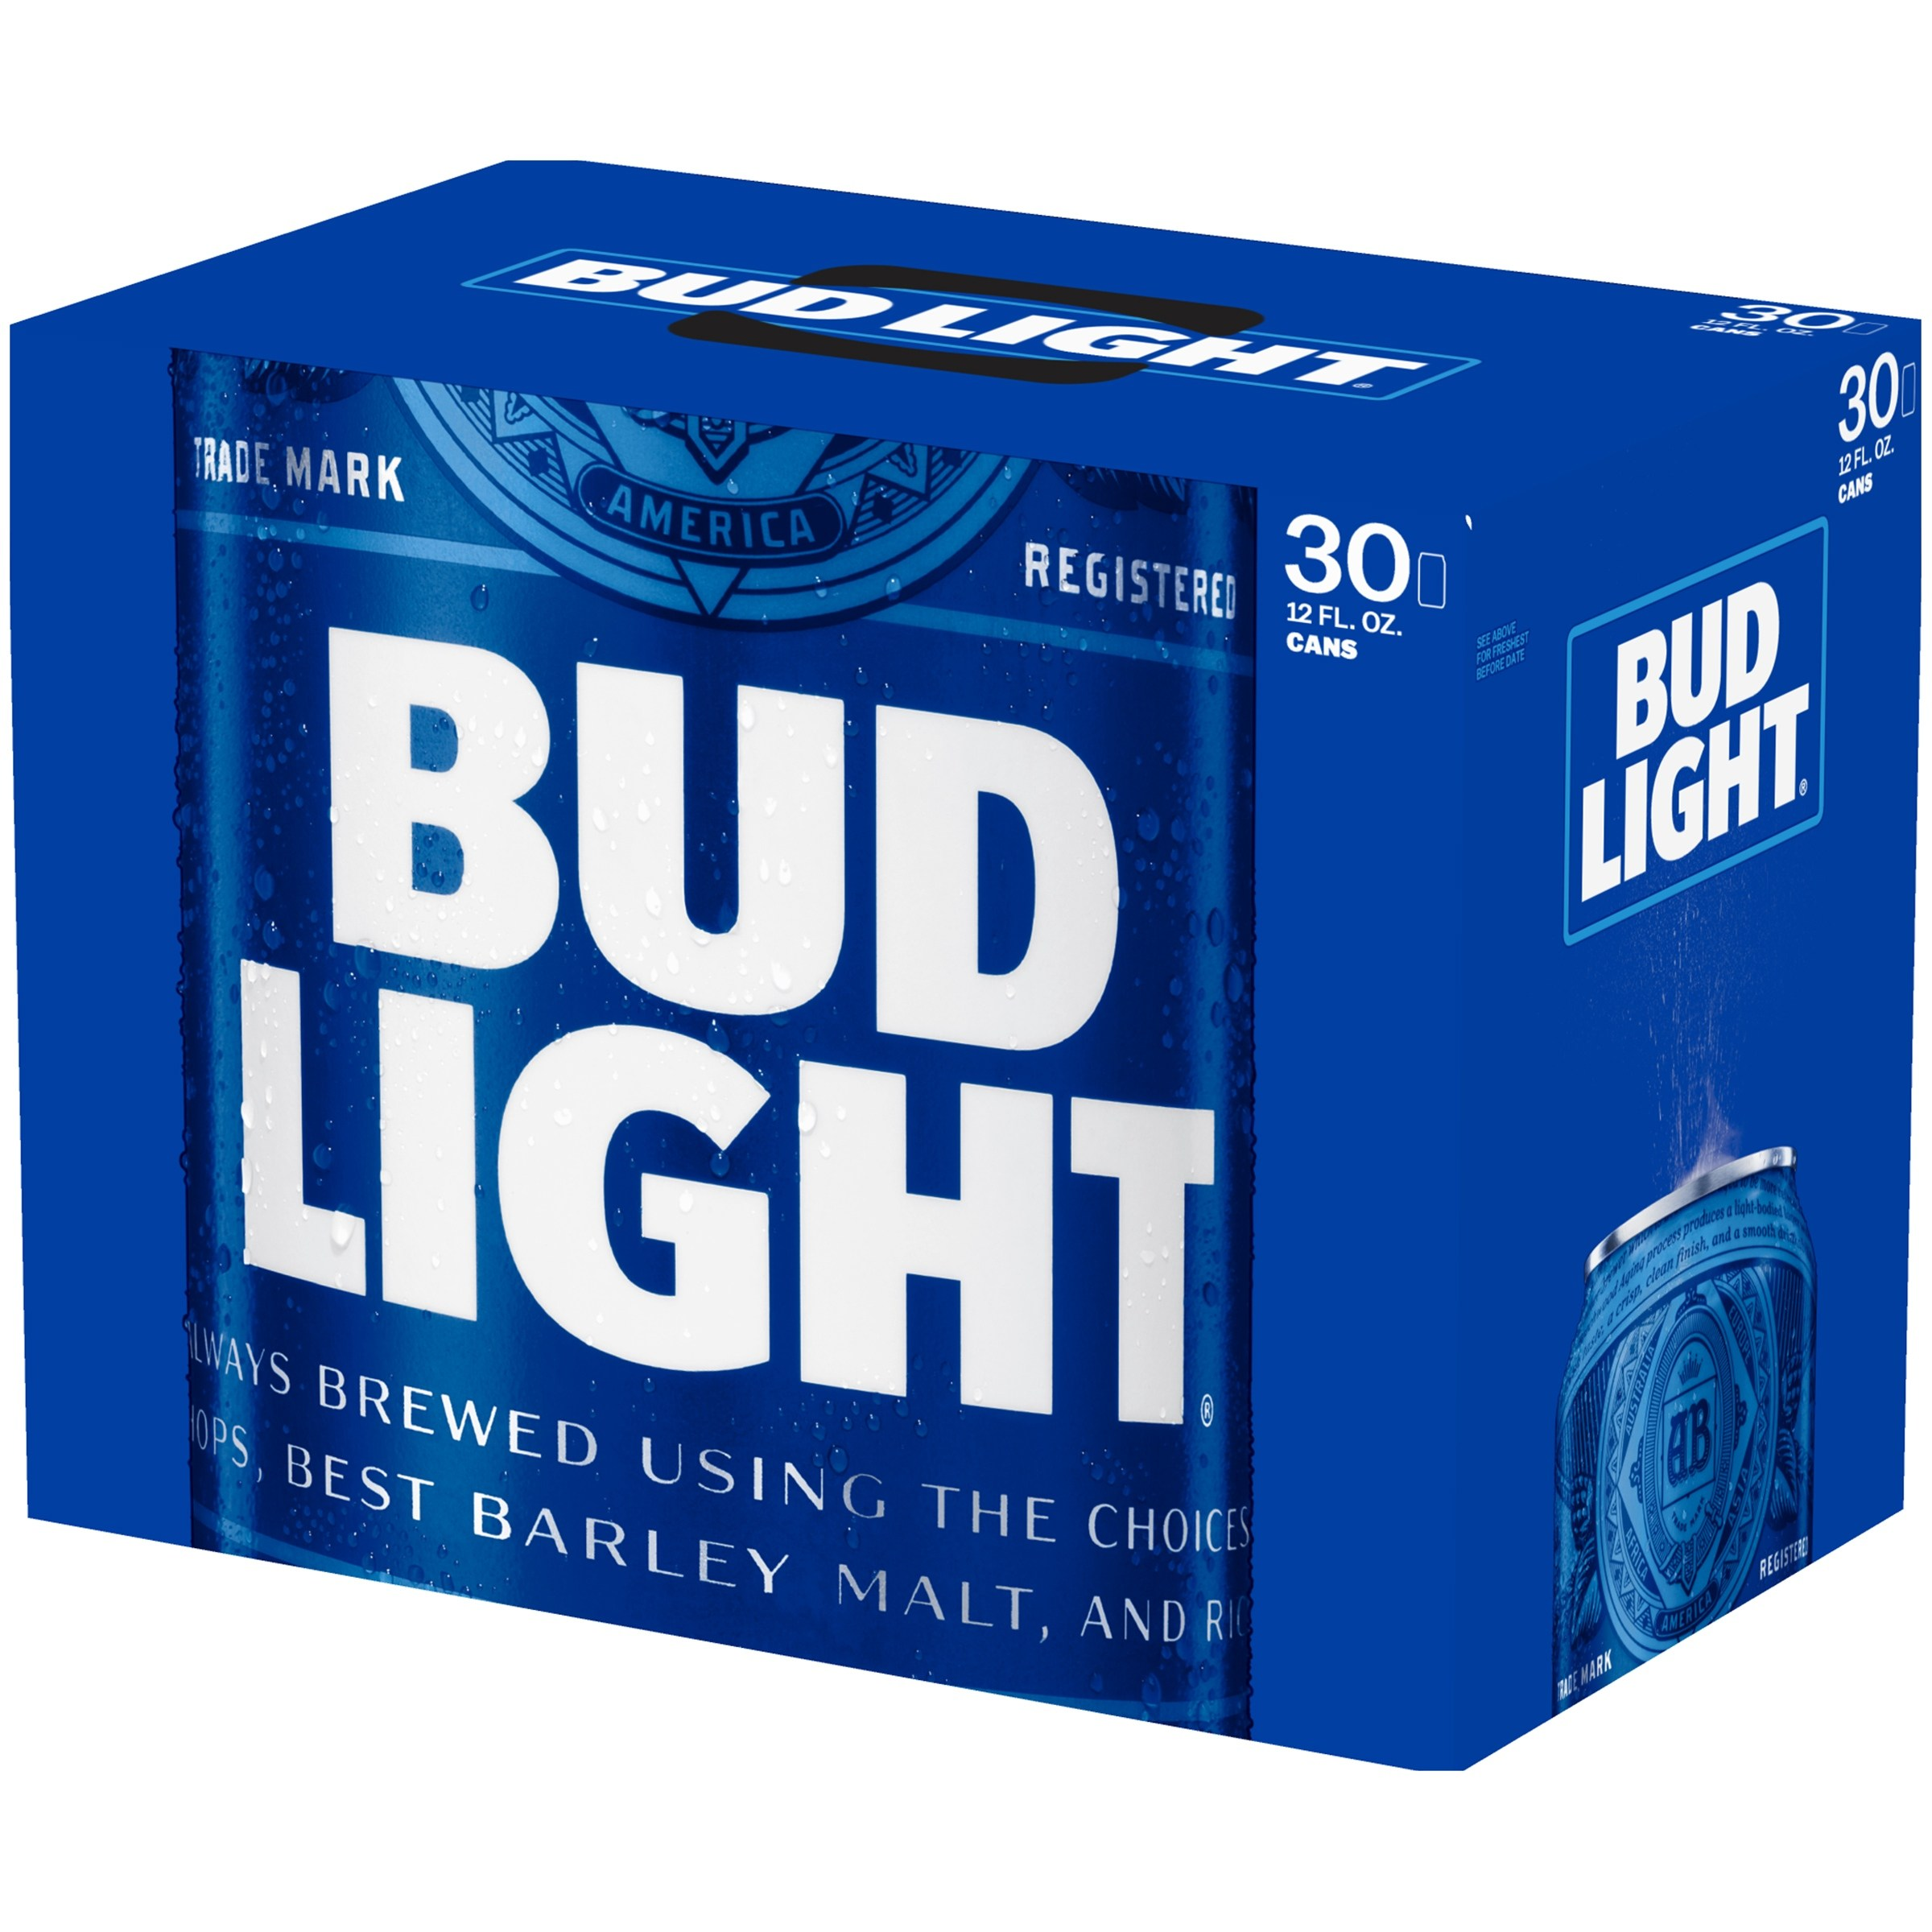 Bud-light-30-pack